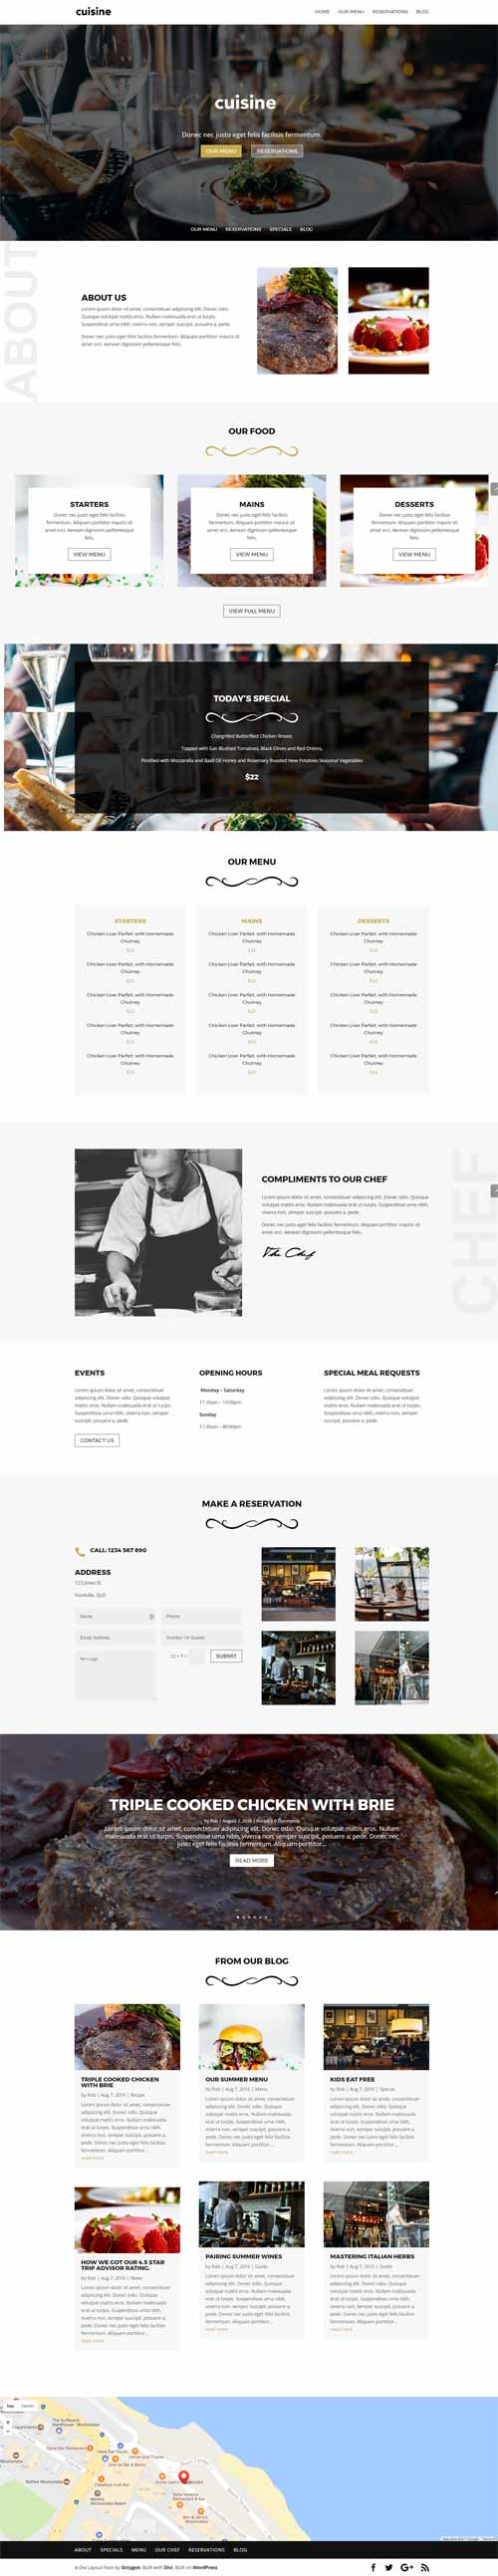 Cuisine page restaurant layout divi theme layouts